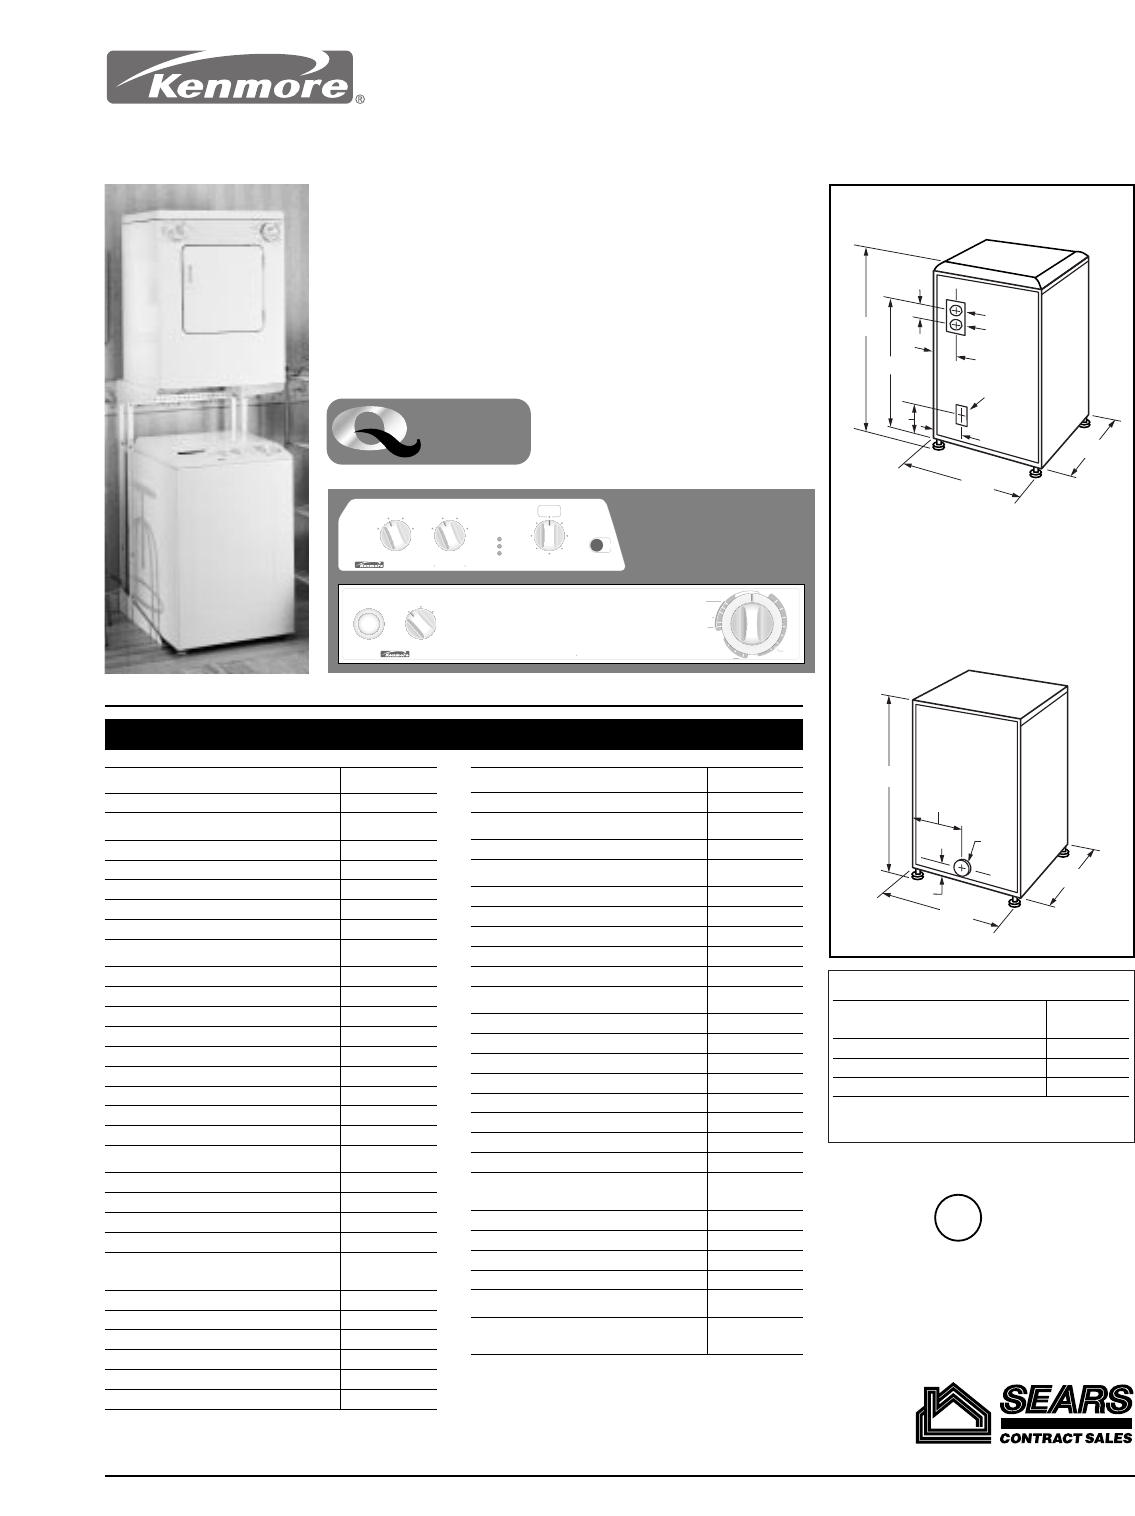 kenmore washerdryer user manual